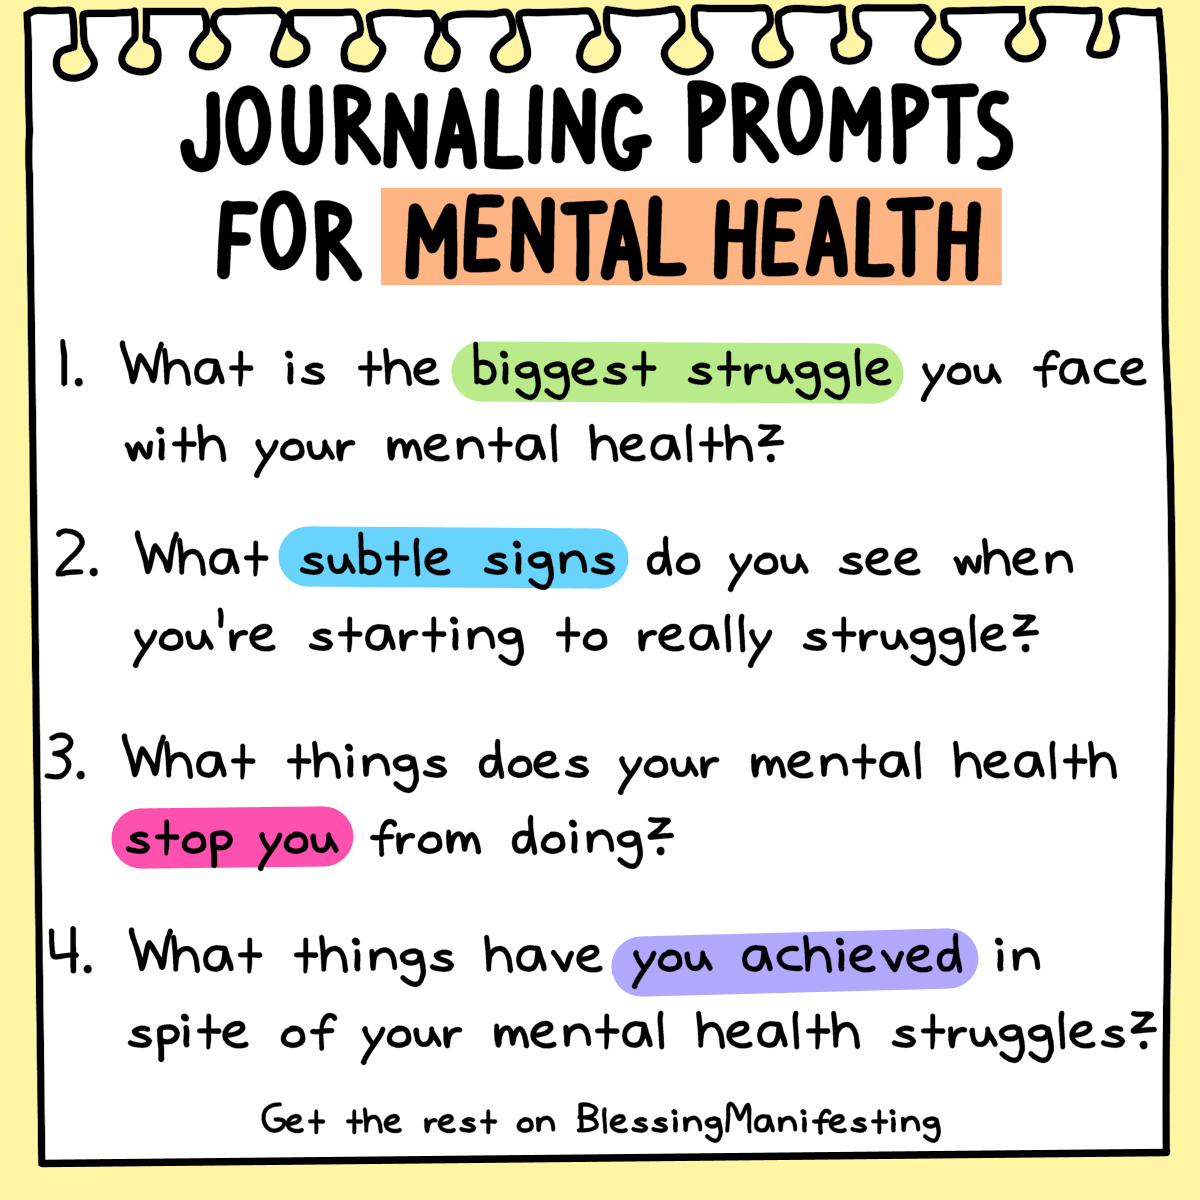 12 Journaling Prompts for Mental Health - Blessing Manifesting